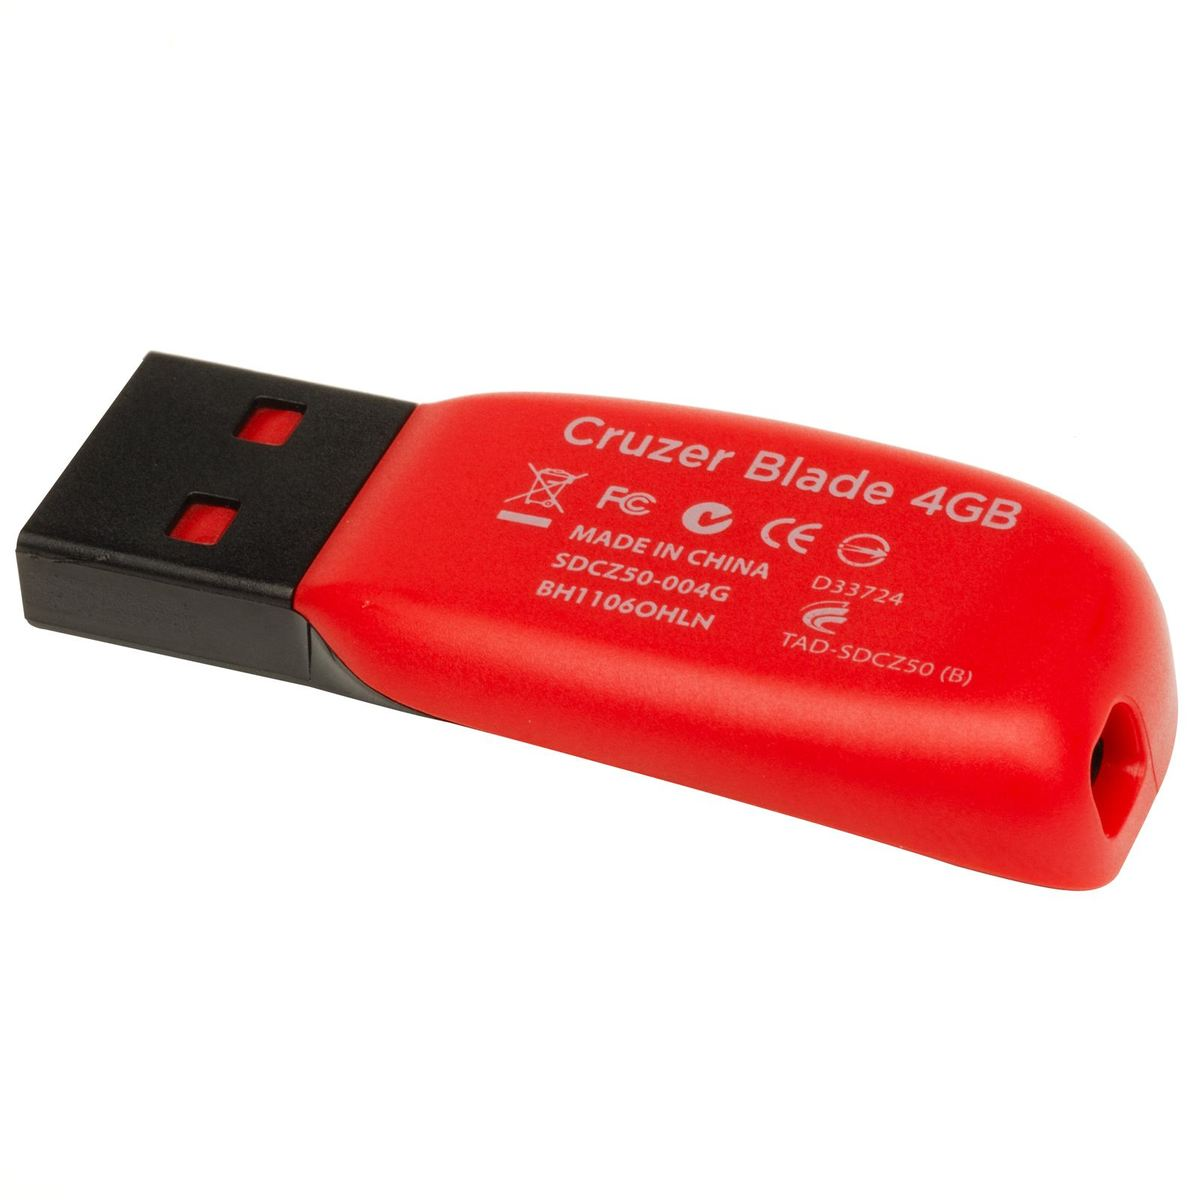 Cruzer Glide 30 USB flash drive - SanDisk Global